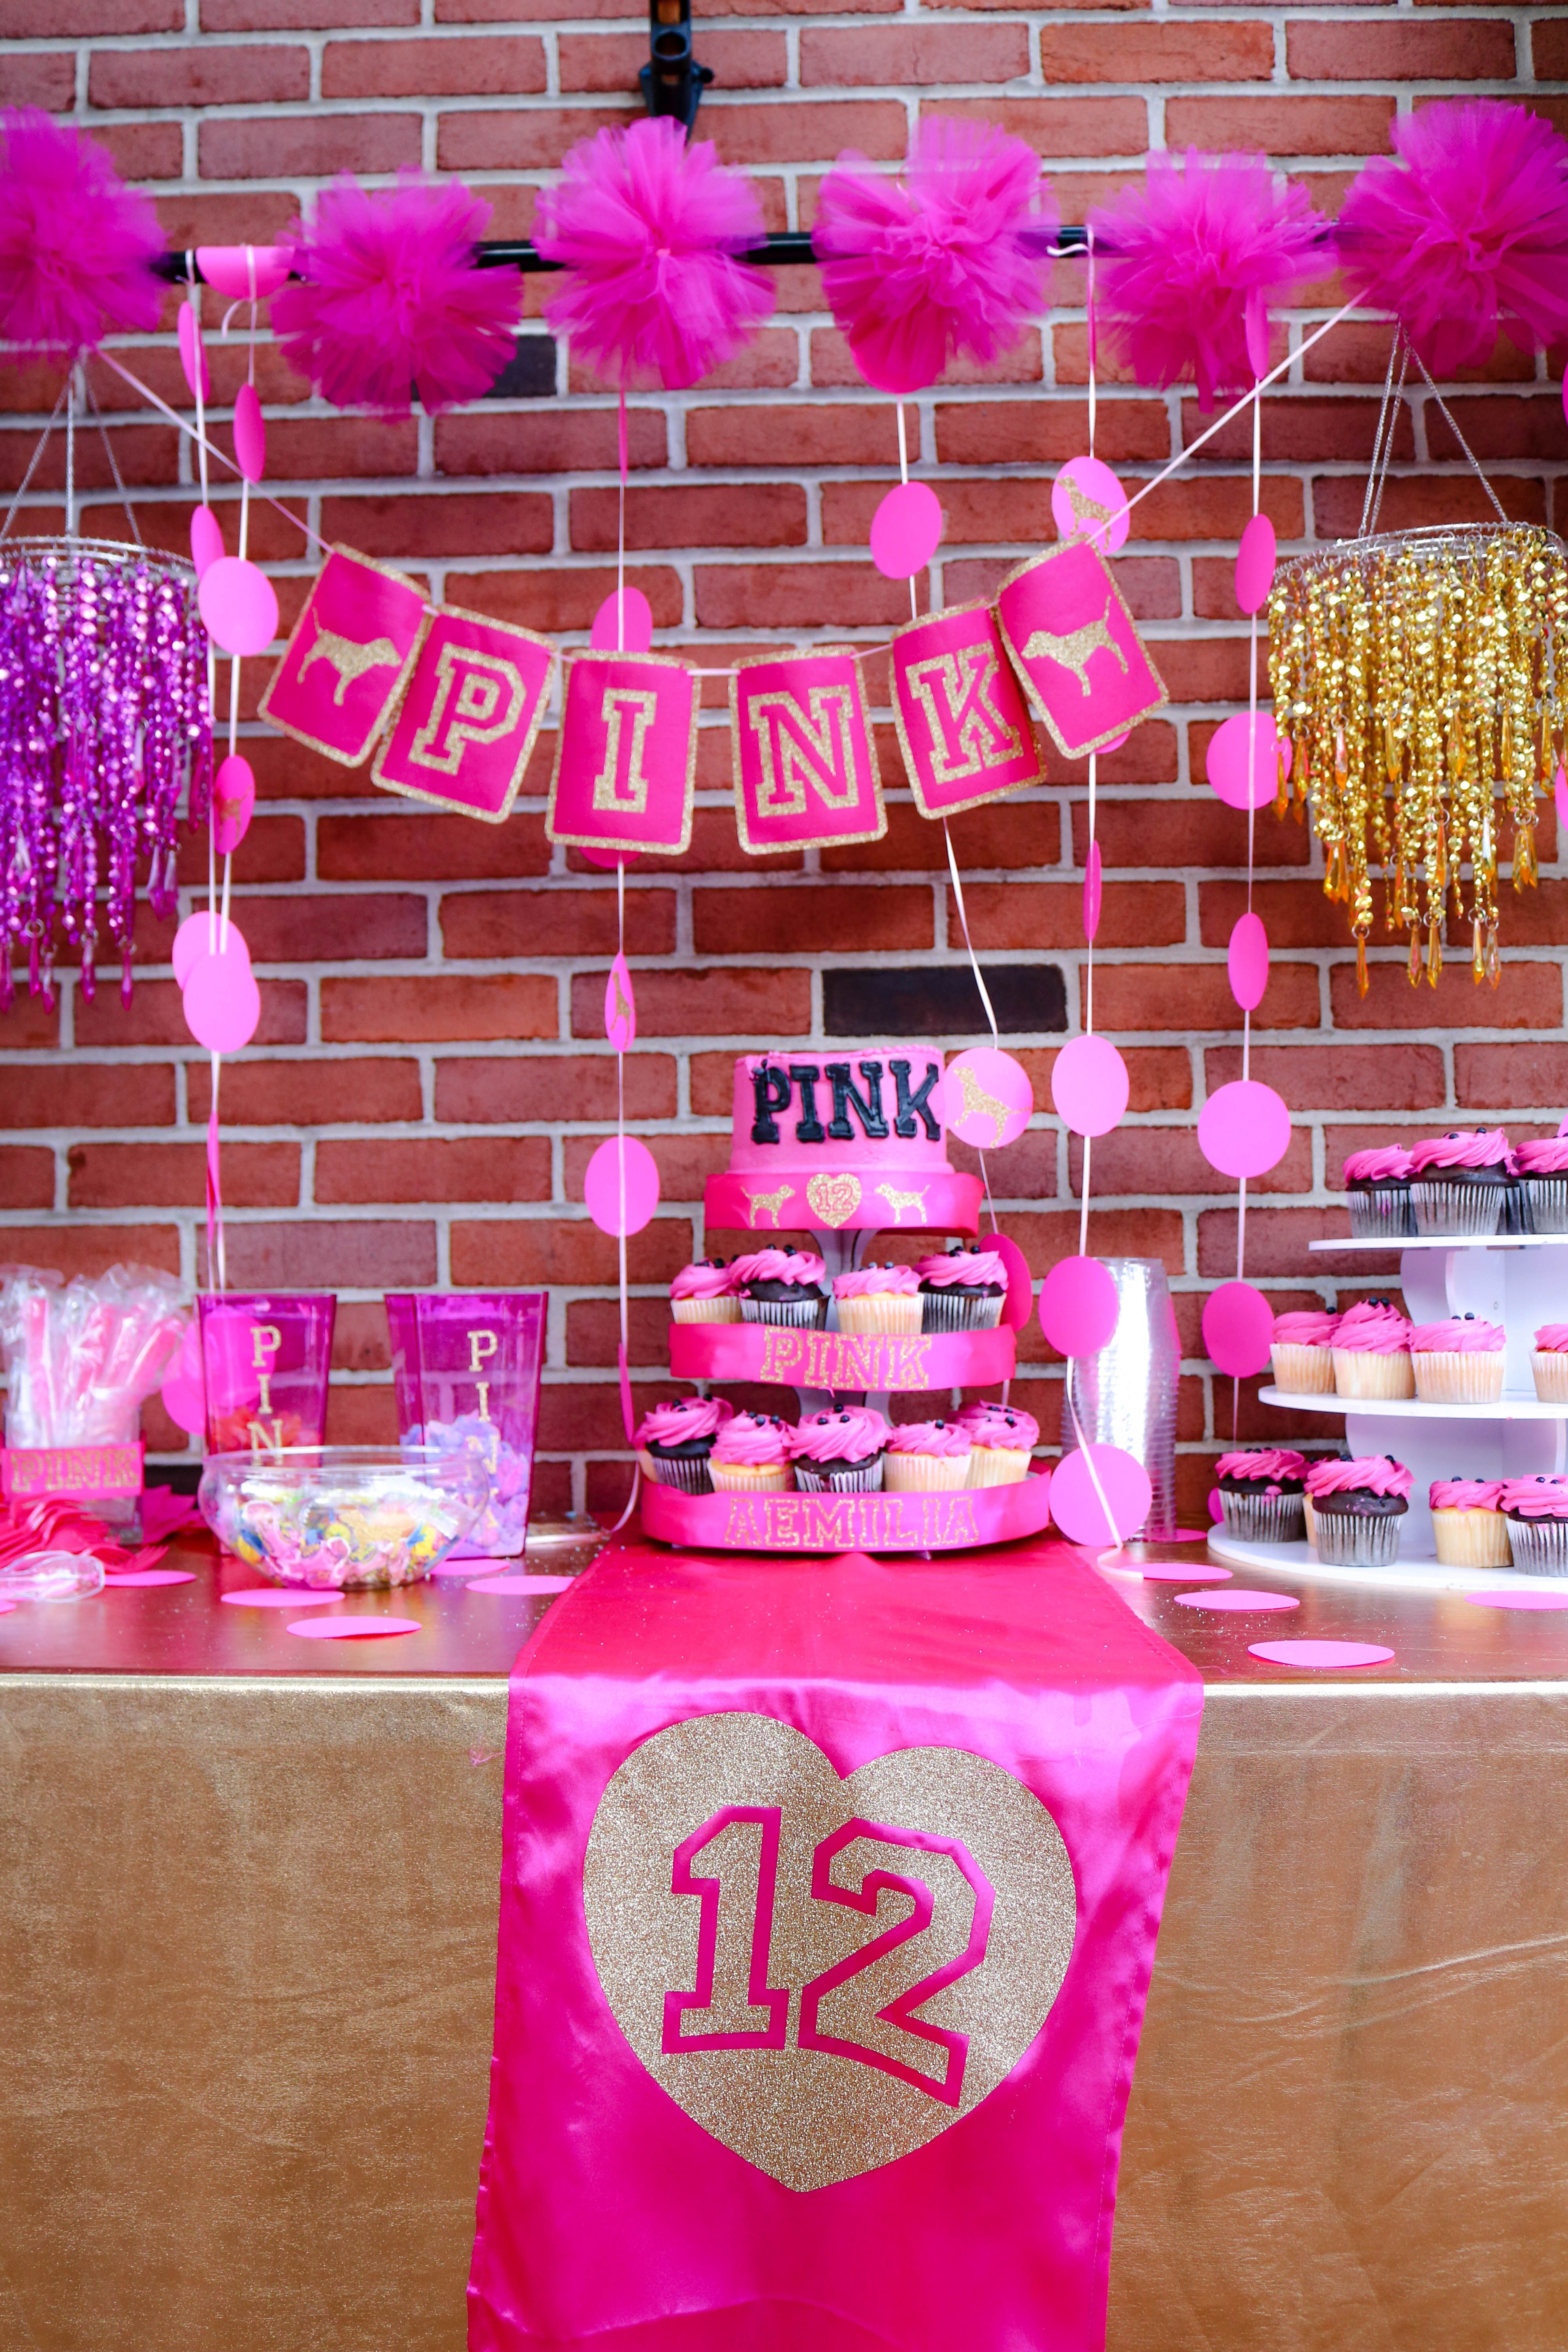 """Best ideas about Pink Birthday Party Decorations . Save or Pin Pink VS Birthday Birthday """"Aemilia s 12th Pink Birthday Now."""